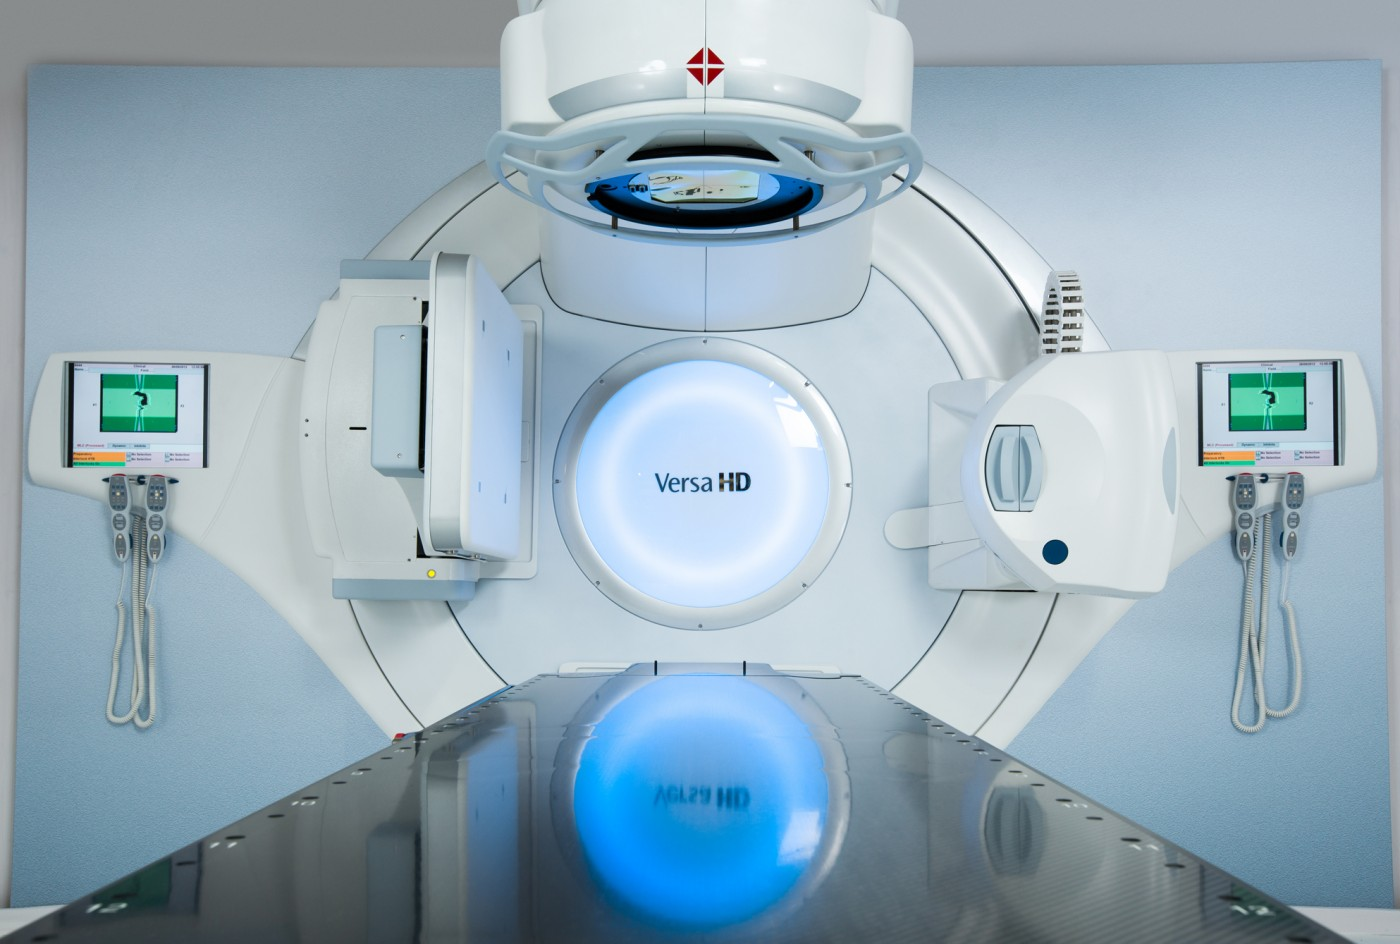 Elekta's Versa HD Radiation Therapy System Implemented in Three Australian Centers